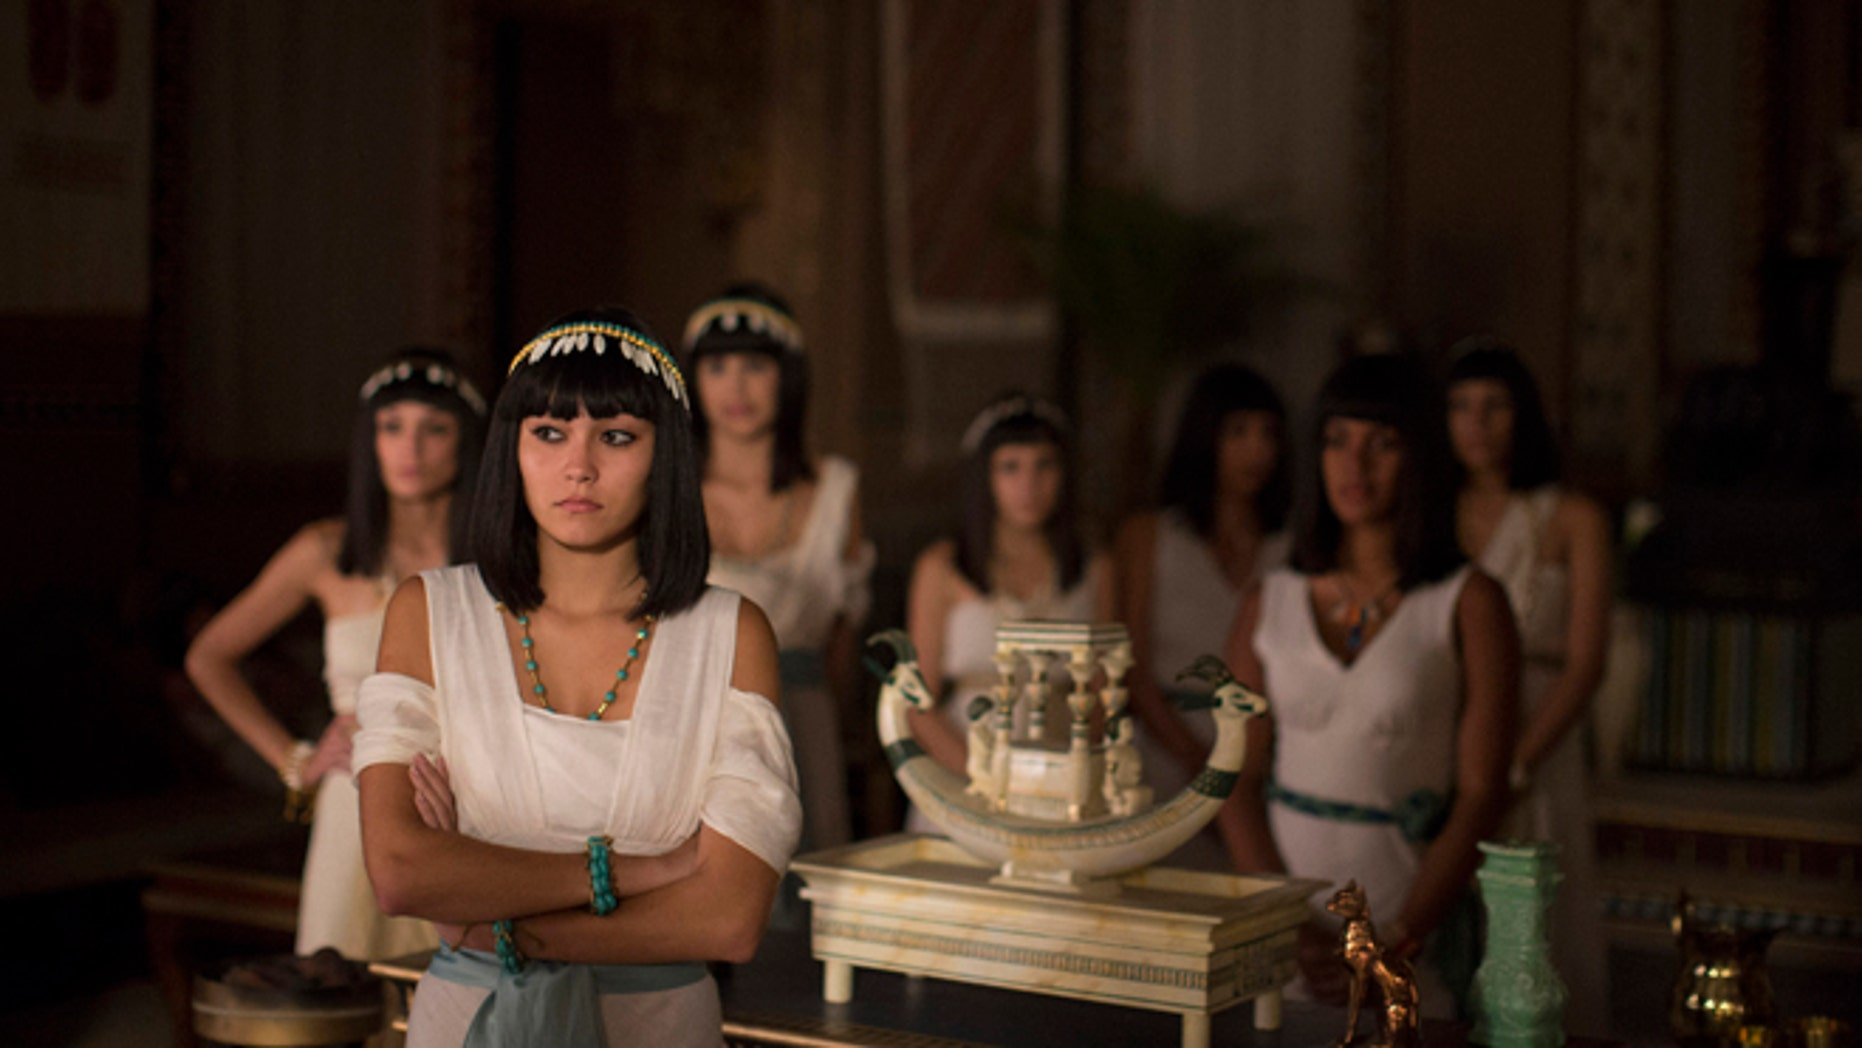 "In this May 13, 2015 photo, Brazilian actresses wait backstage for their cue during the filming of the Brazilian prime-time soap opera, ""The Ten Commandments"" at a RecNov studio, in Rio de Janeiro, Brazil. Swathed in Egyptian cotton robes and sporting lapis lazuli jewelry and Cleopatra wigs, some of the characters are based on Biblical or other historic figures, while others are invented. (AP Photo/Leo Correa)"